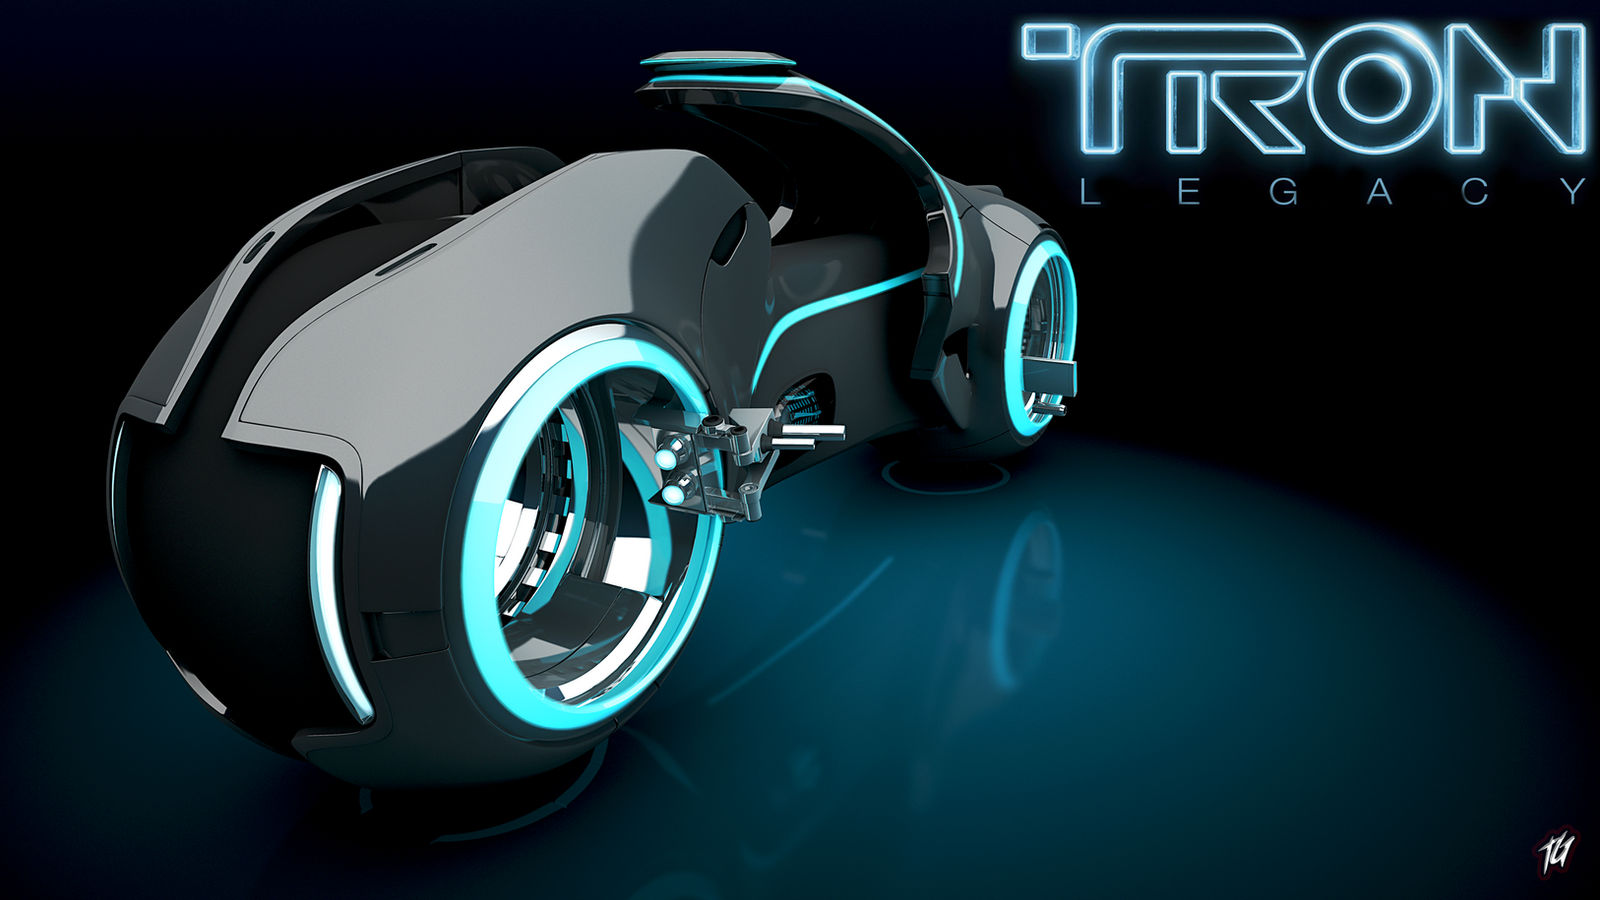 Tron Legacy Light Cycle By Stupify61 On Deviantart